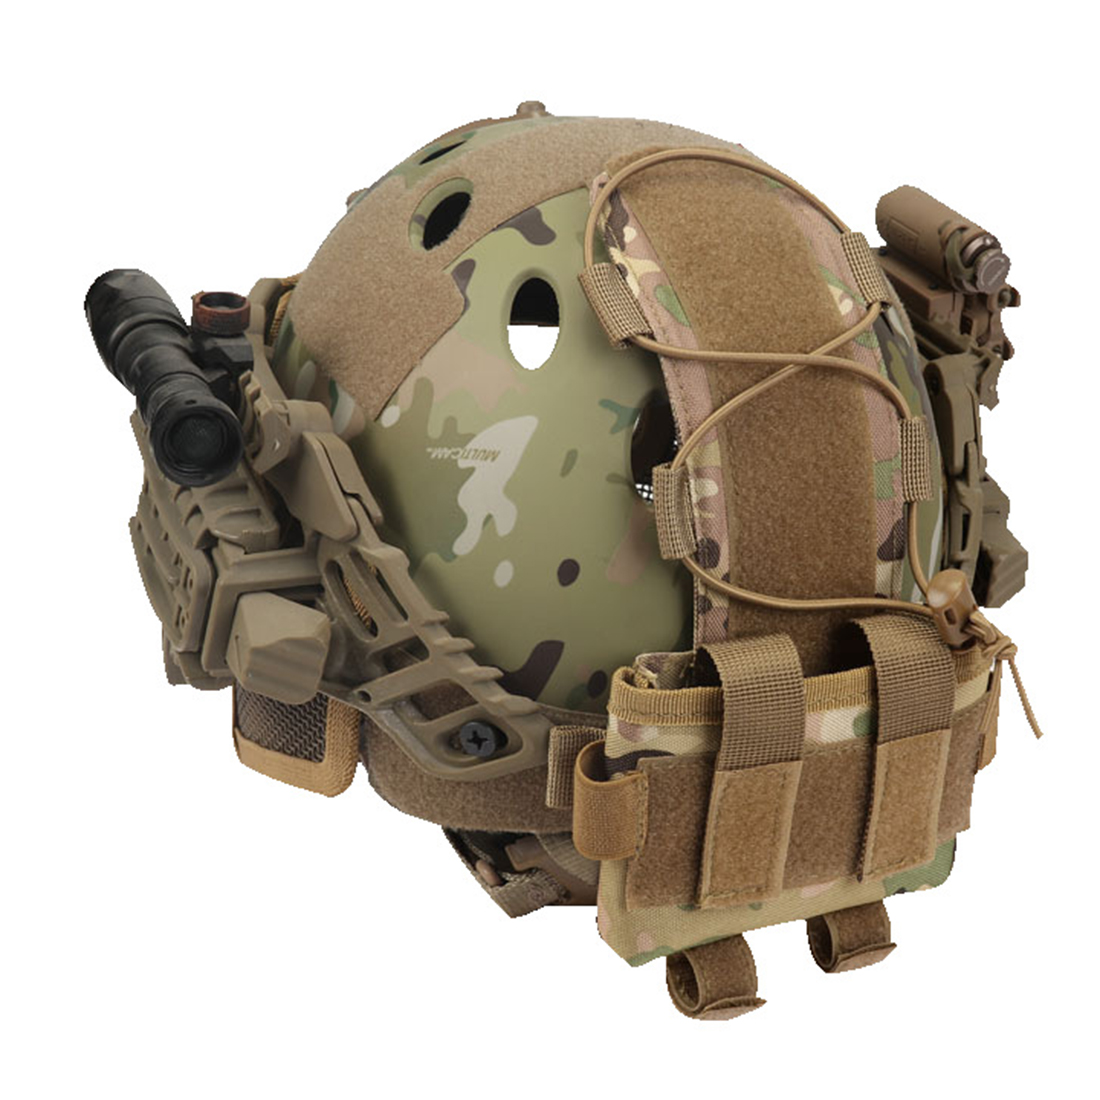 Tactical Helmet Battery Pouch MK2 Helmet Battery Pack FAST Helmet Balance Weight Bag For Airsoft Hunting Outdoor Sports